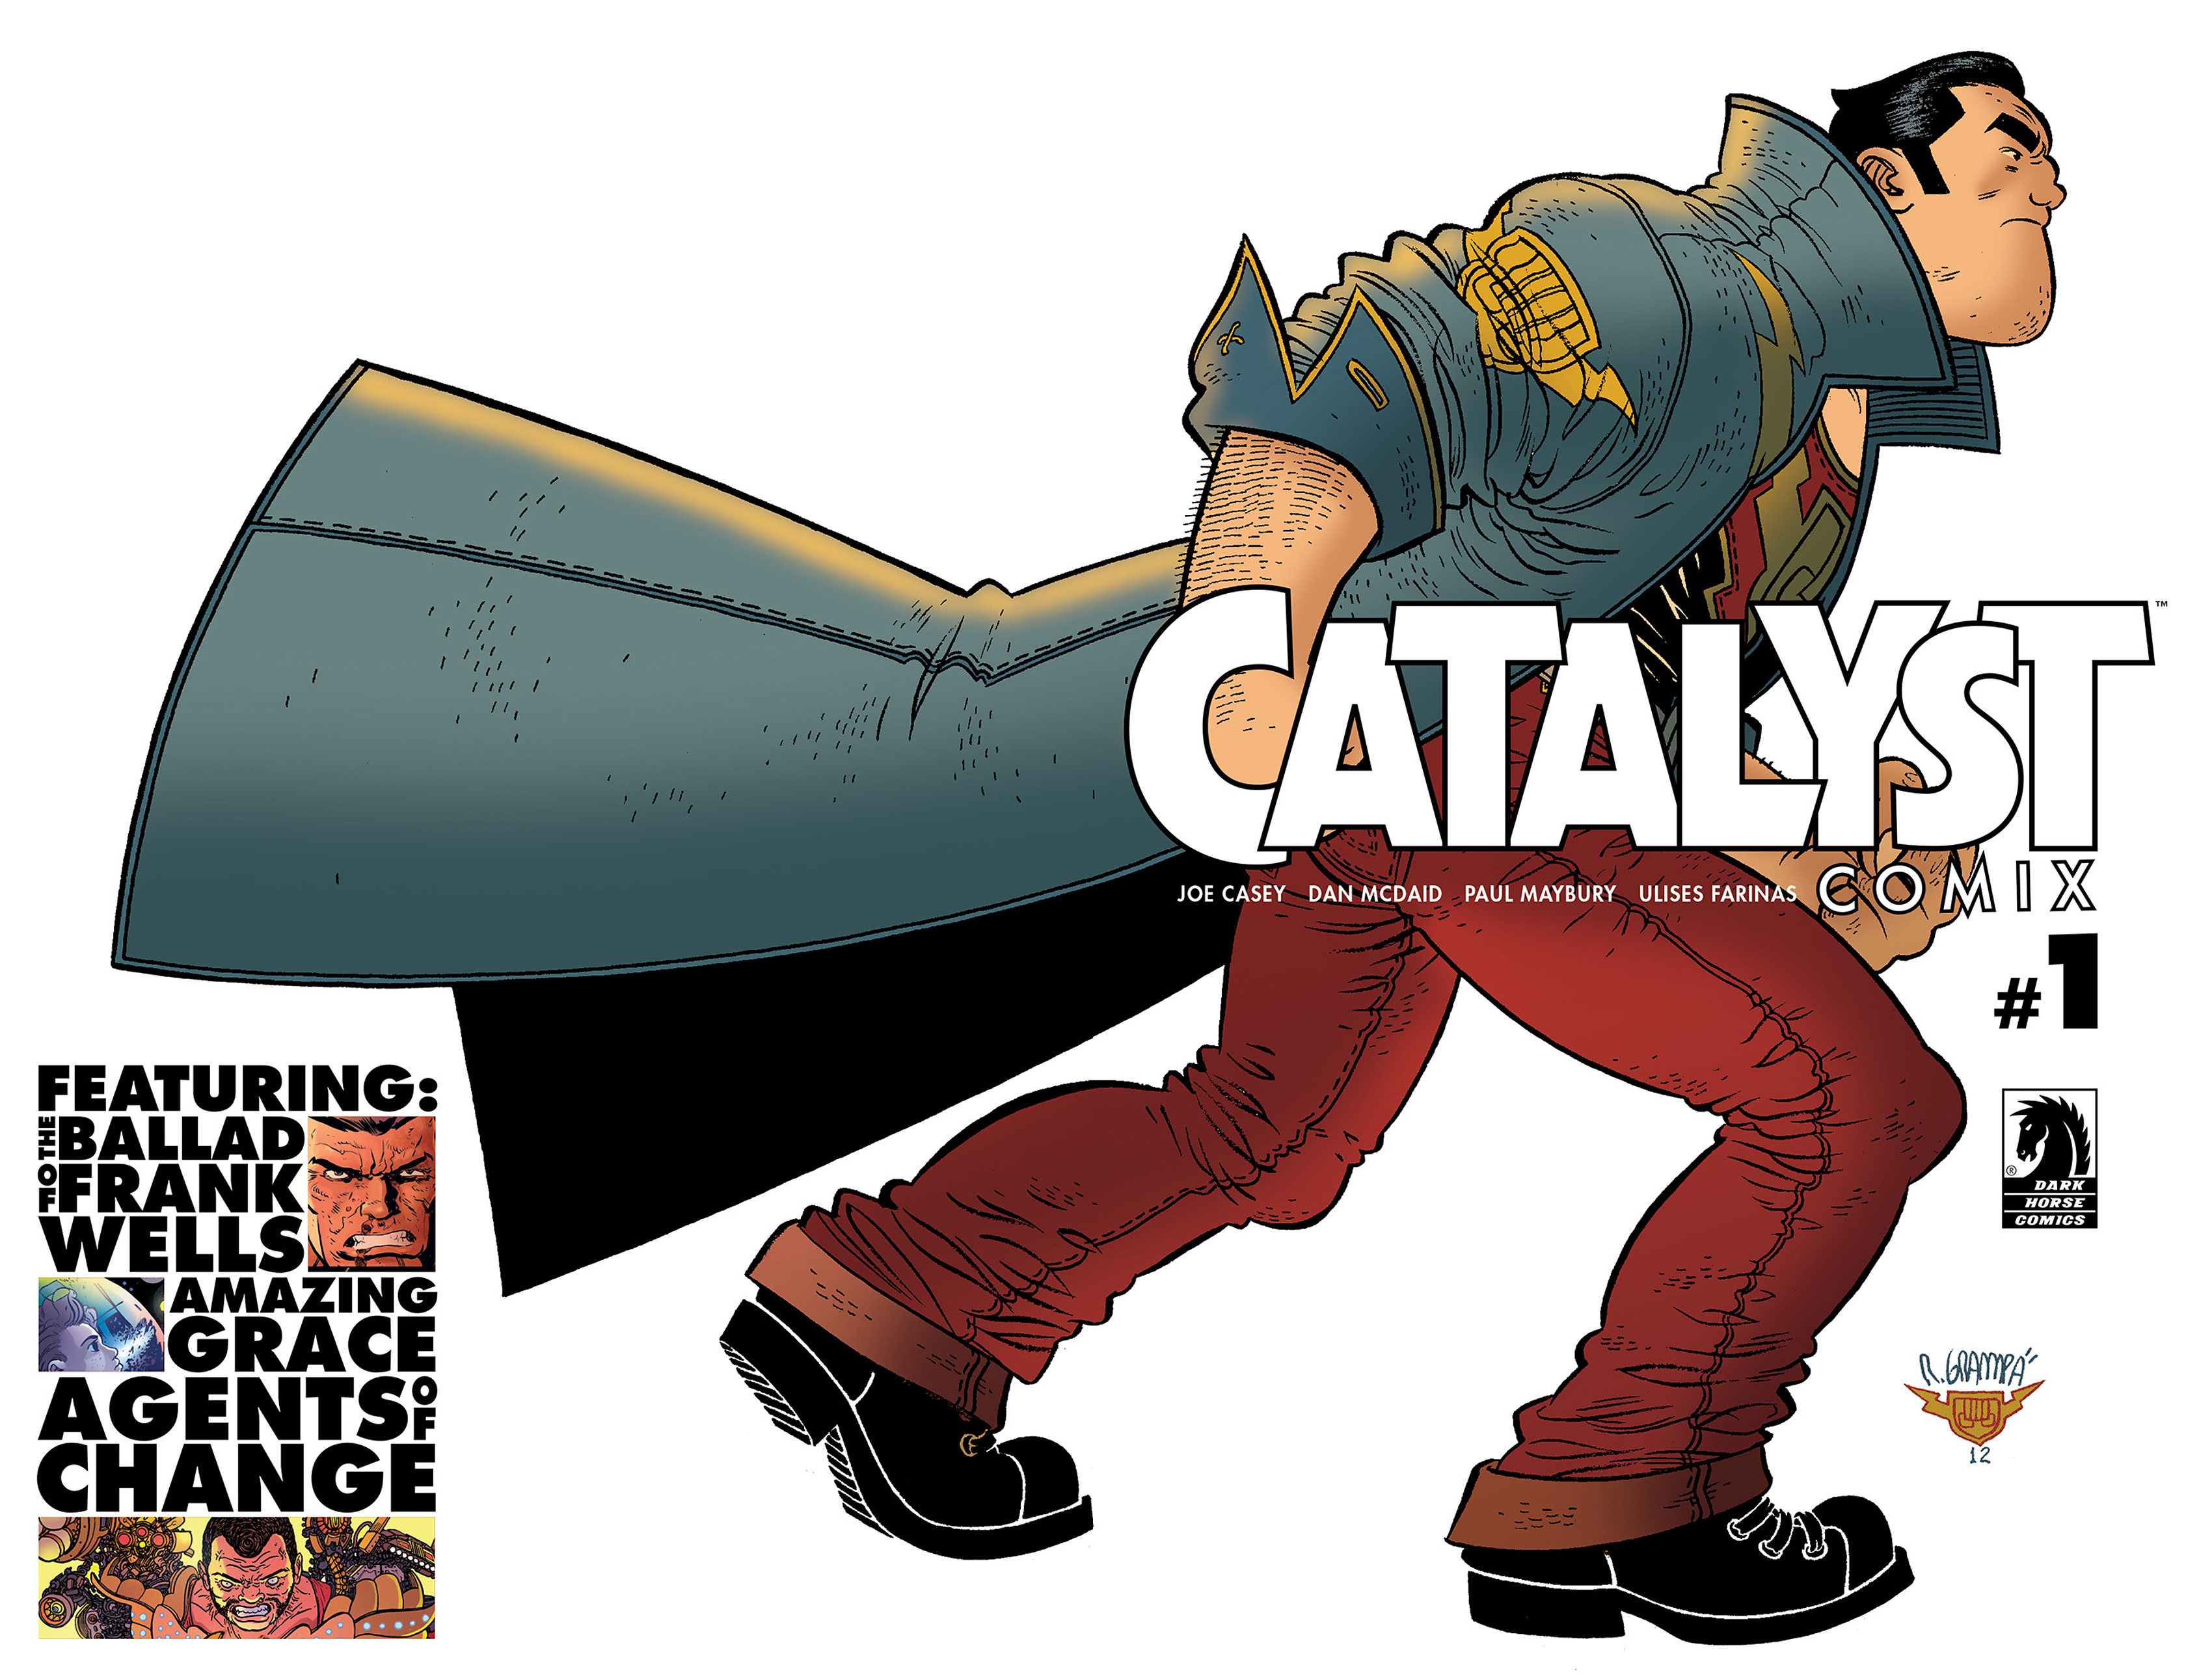 Read online Catalyst Comix comic -  Issue #1 - 1